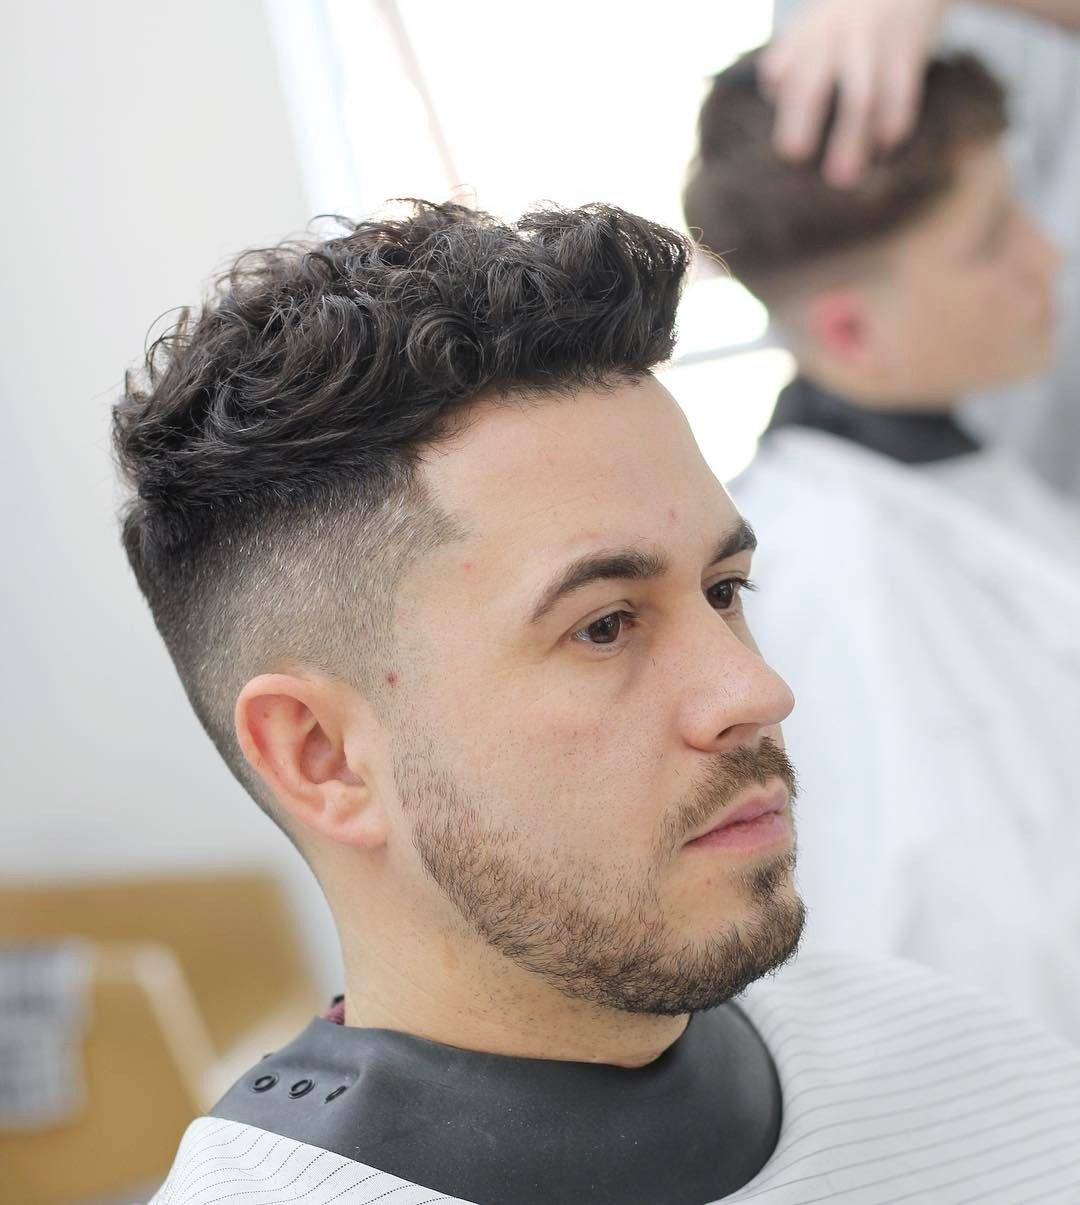 Low Fade Messy On Top Mens Hairstyles Short Thick Hair Styles Curly Hair Men